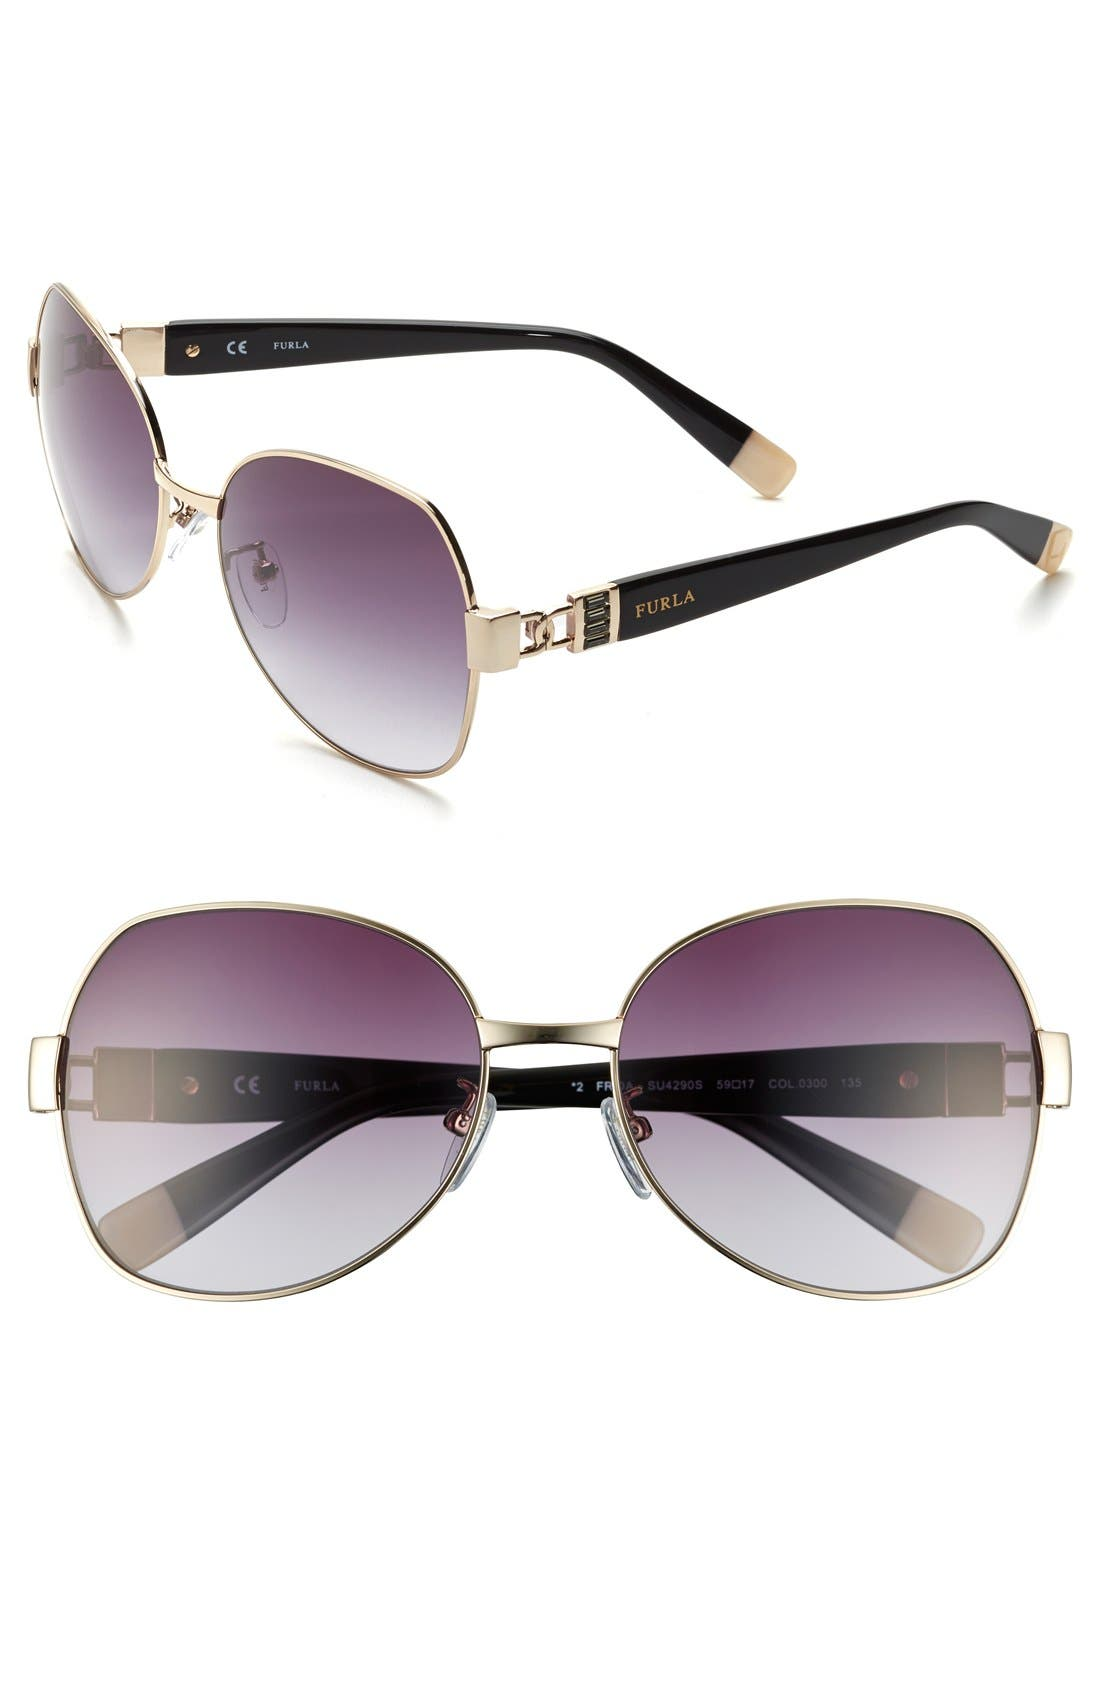 Main Image - Furla 59mm Swarovski Crystal Sunglasses